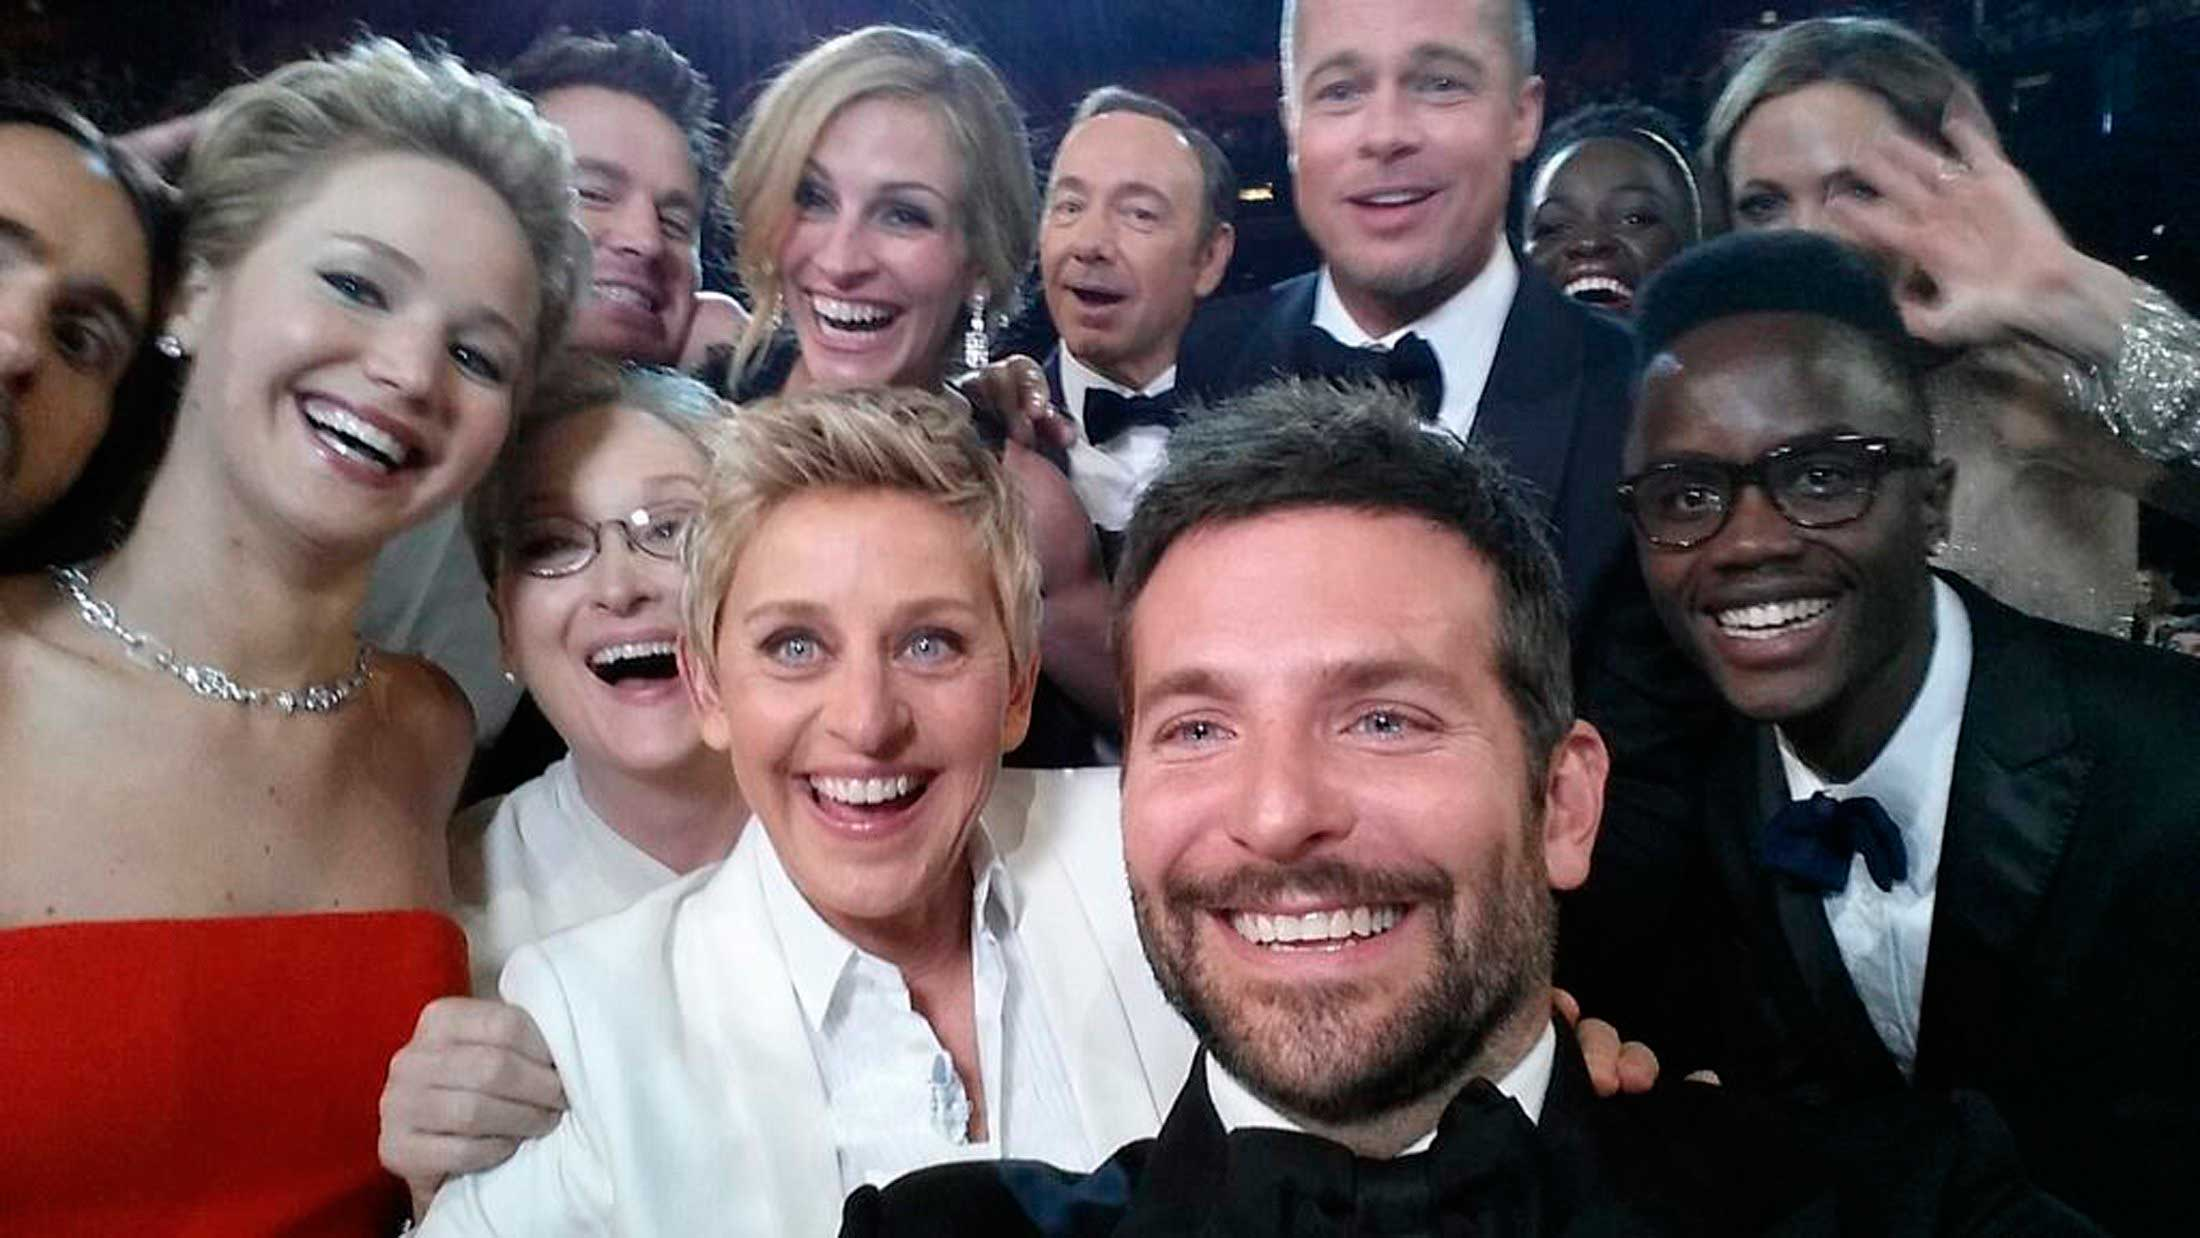 Ellen DeGeneres. Hollywood, California. March 2, 2014:  It started out as a joke on Meryl Streep – because I adore her and she has a great sense of humor,  says Ellen DeGeneres.  The plan was: I was gonna go to Meryl in the audience and say, 'Let's take a selfie.' And try to set a record for the most retweets. I knew she'd be up for that and I knew that there were some people sitting in that area who would join in if I asked (by the way, no one knew I was doing this. It was a surprise to everyone.)                                                                I was gonna ask these other celebrities to jump in. The plan and hope was there would be too many and I would ask Meryl to step out and take the picture. If you watch it again you can hear me trying to ask Meryl to get out. But Bradley Cooper insisted he could take it, which he did. Brilliantly.                                                                The plan worked – sort of. There were more celebrities than I even imagined. Jared Leto ran from the other side of the room to be in it. Brad and Angelina came in from another section. Liza Minelli is somewhere in the back. You can't see her, but she's back there. And then of course there's Lupita Nyongo's brother – he's front and center.                                                                It was this incredible moment of spontaneity that I will never forget. And thanks to the selfie neither will anyone else.